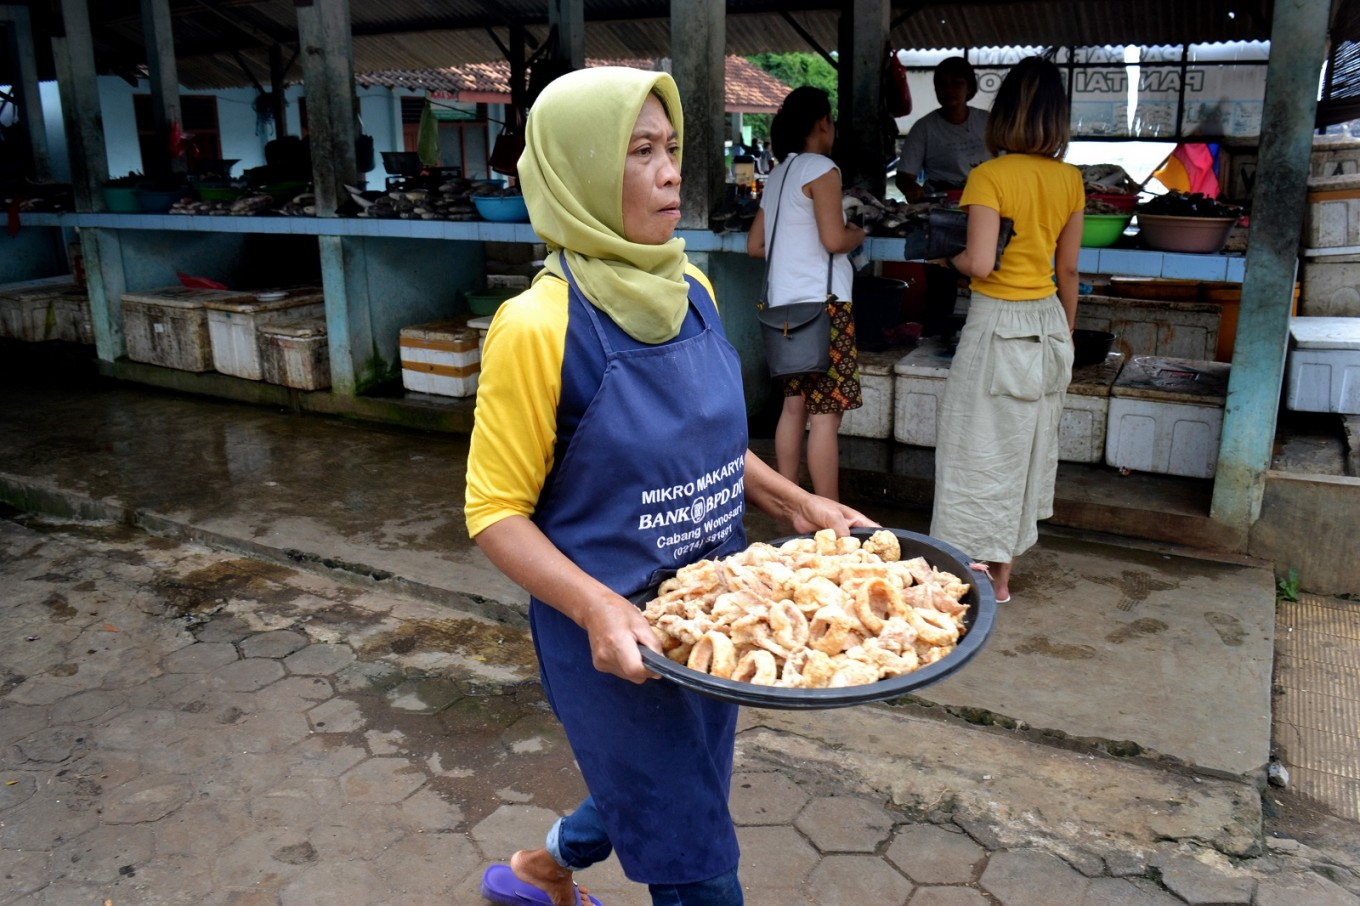 Seafood-based snacks offered at Baron Beach, Gunungkidul, Central Java